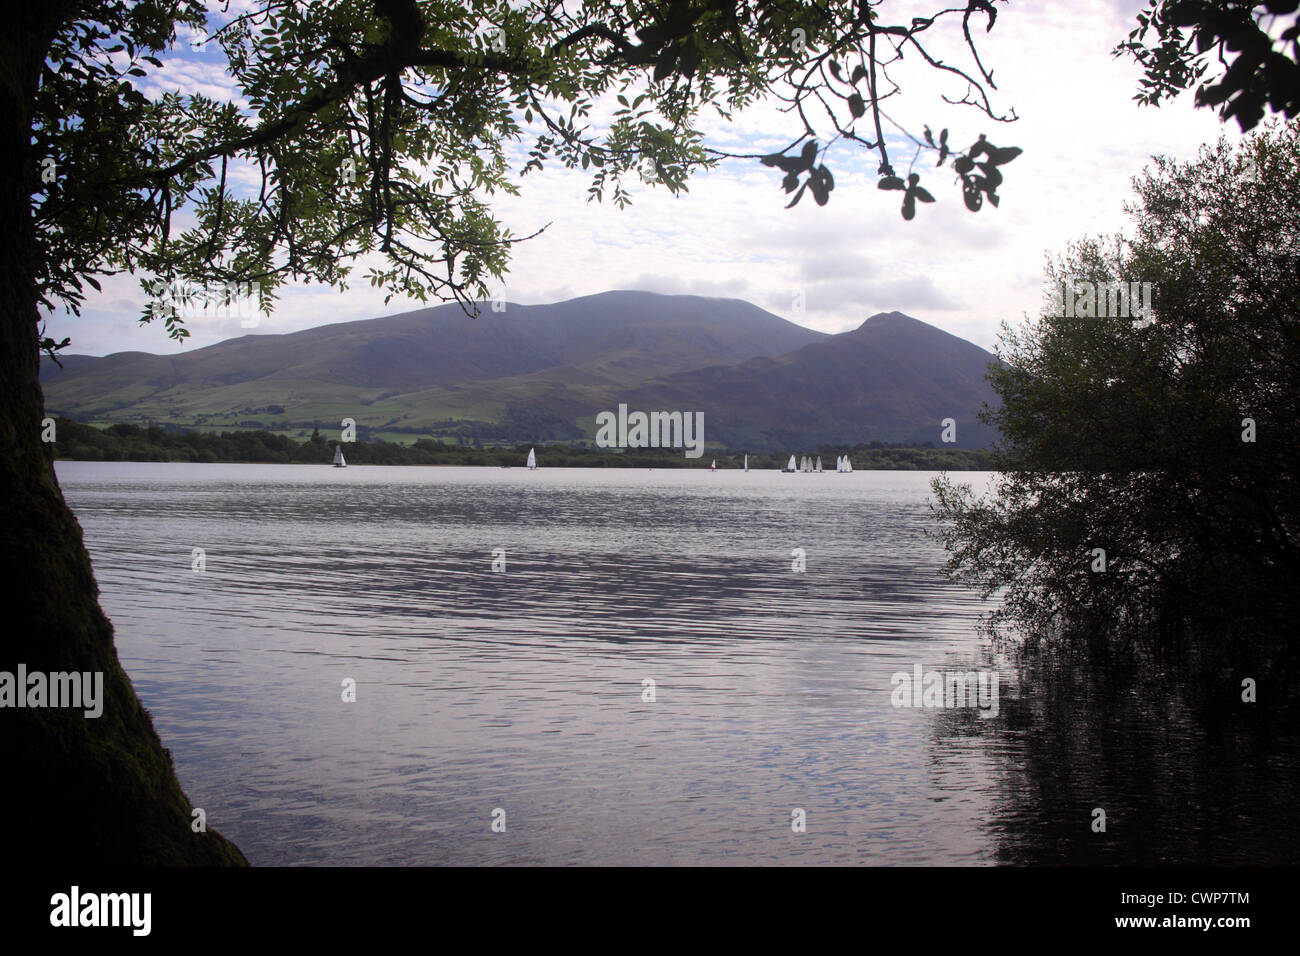 Boats sail on Bassenthwaite lake, looking across from near the Ouse bridge. Lower slopes of Skiddaw rise opposite - Stock Image